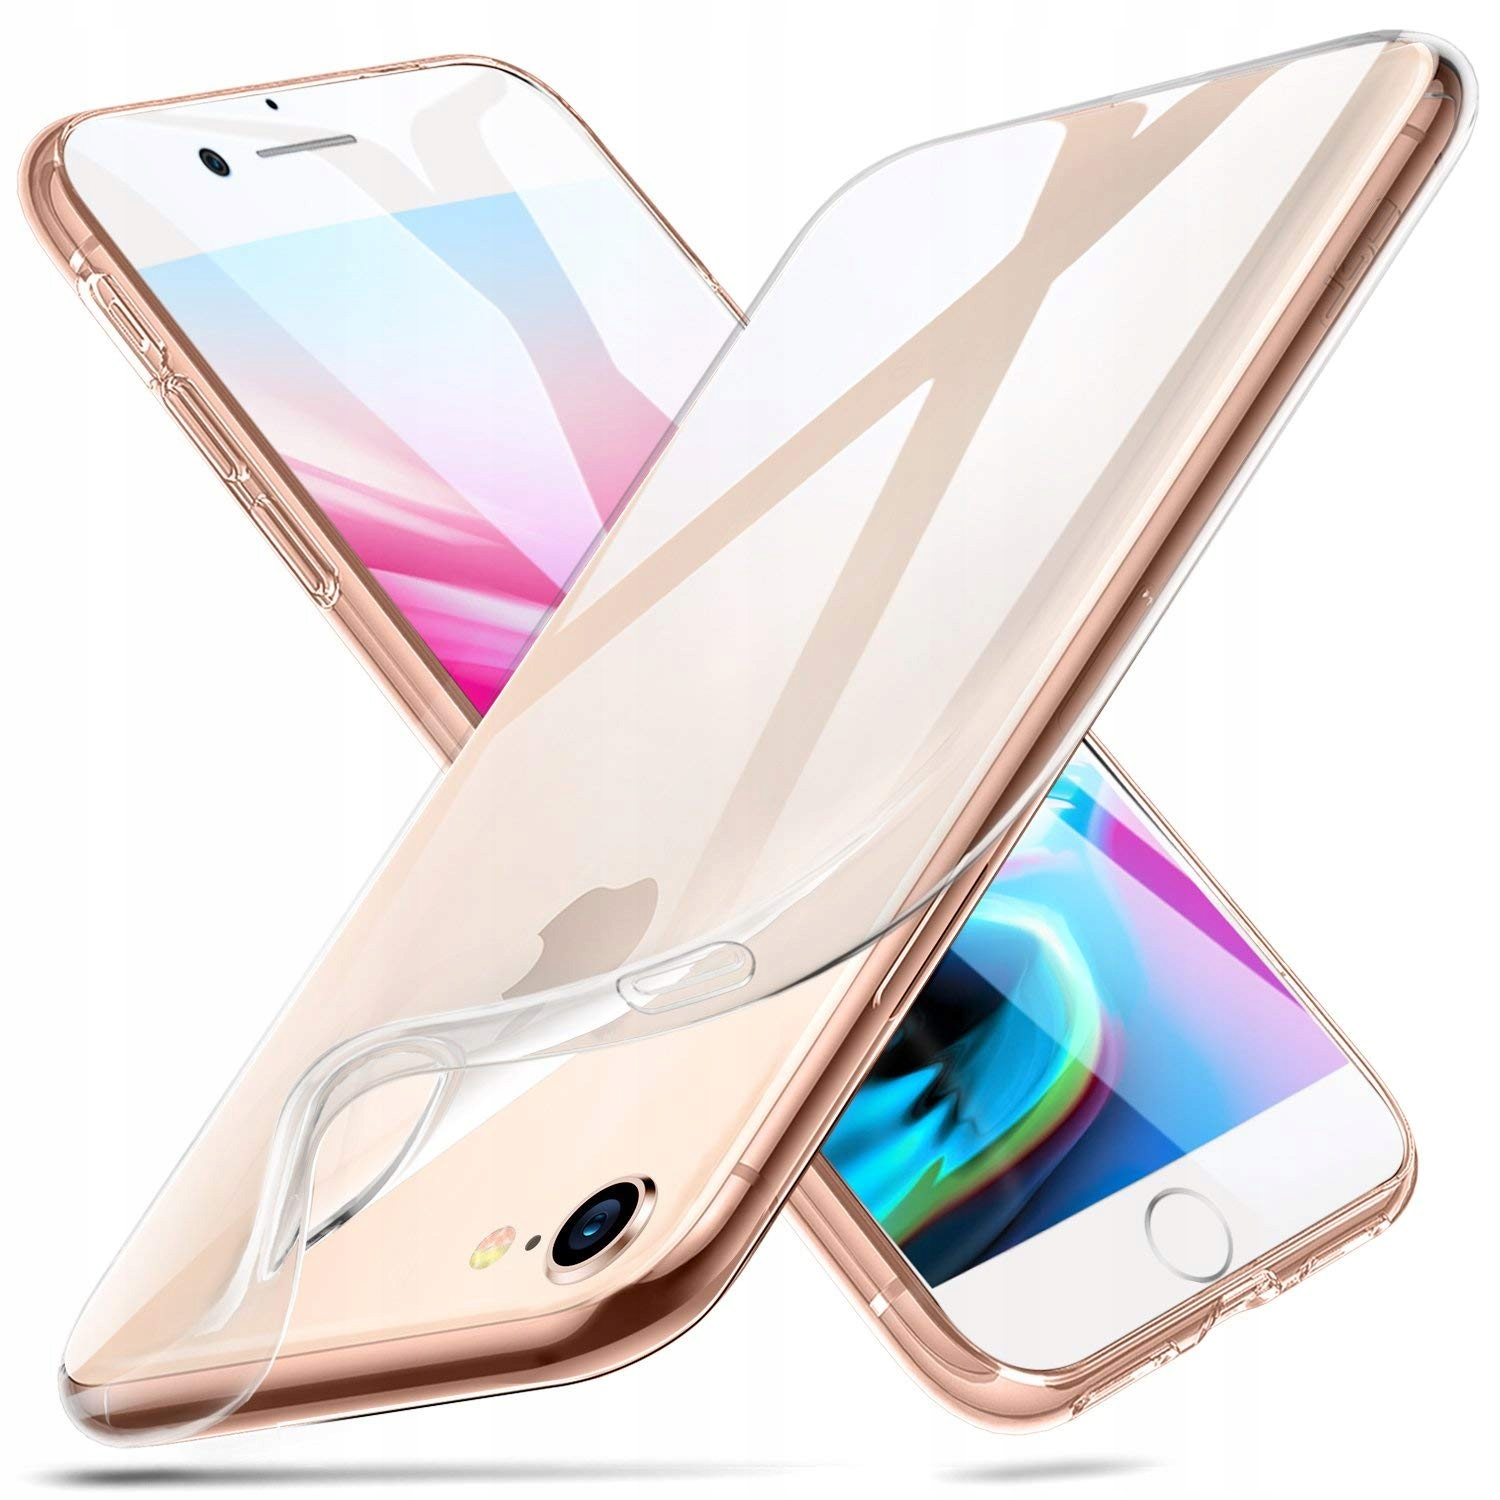 Item CASE ULTRA SLIM FOR APPLE IPHONE 7/8 + GLASS